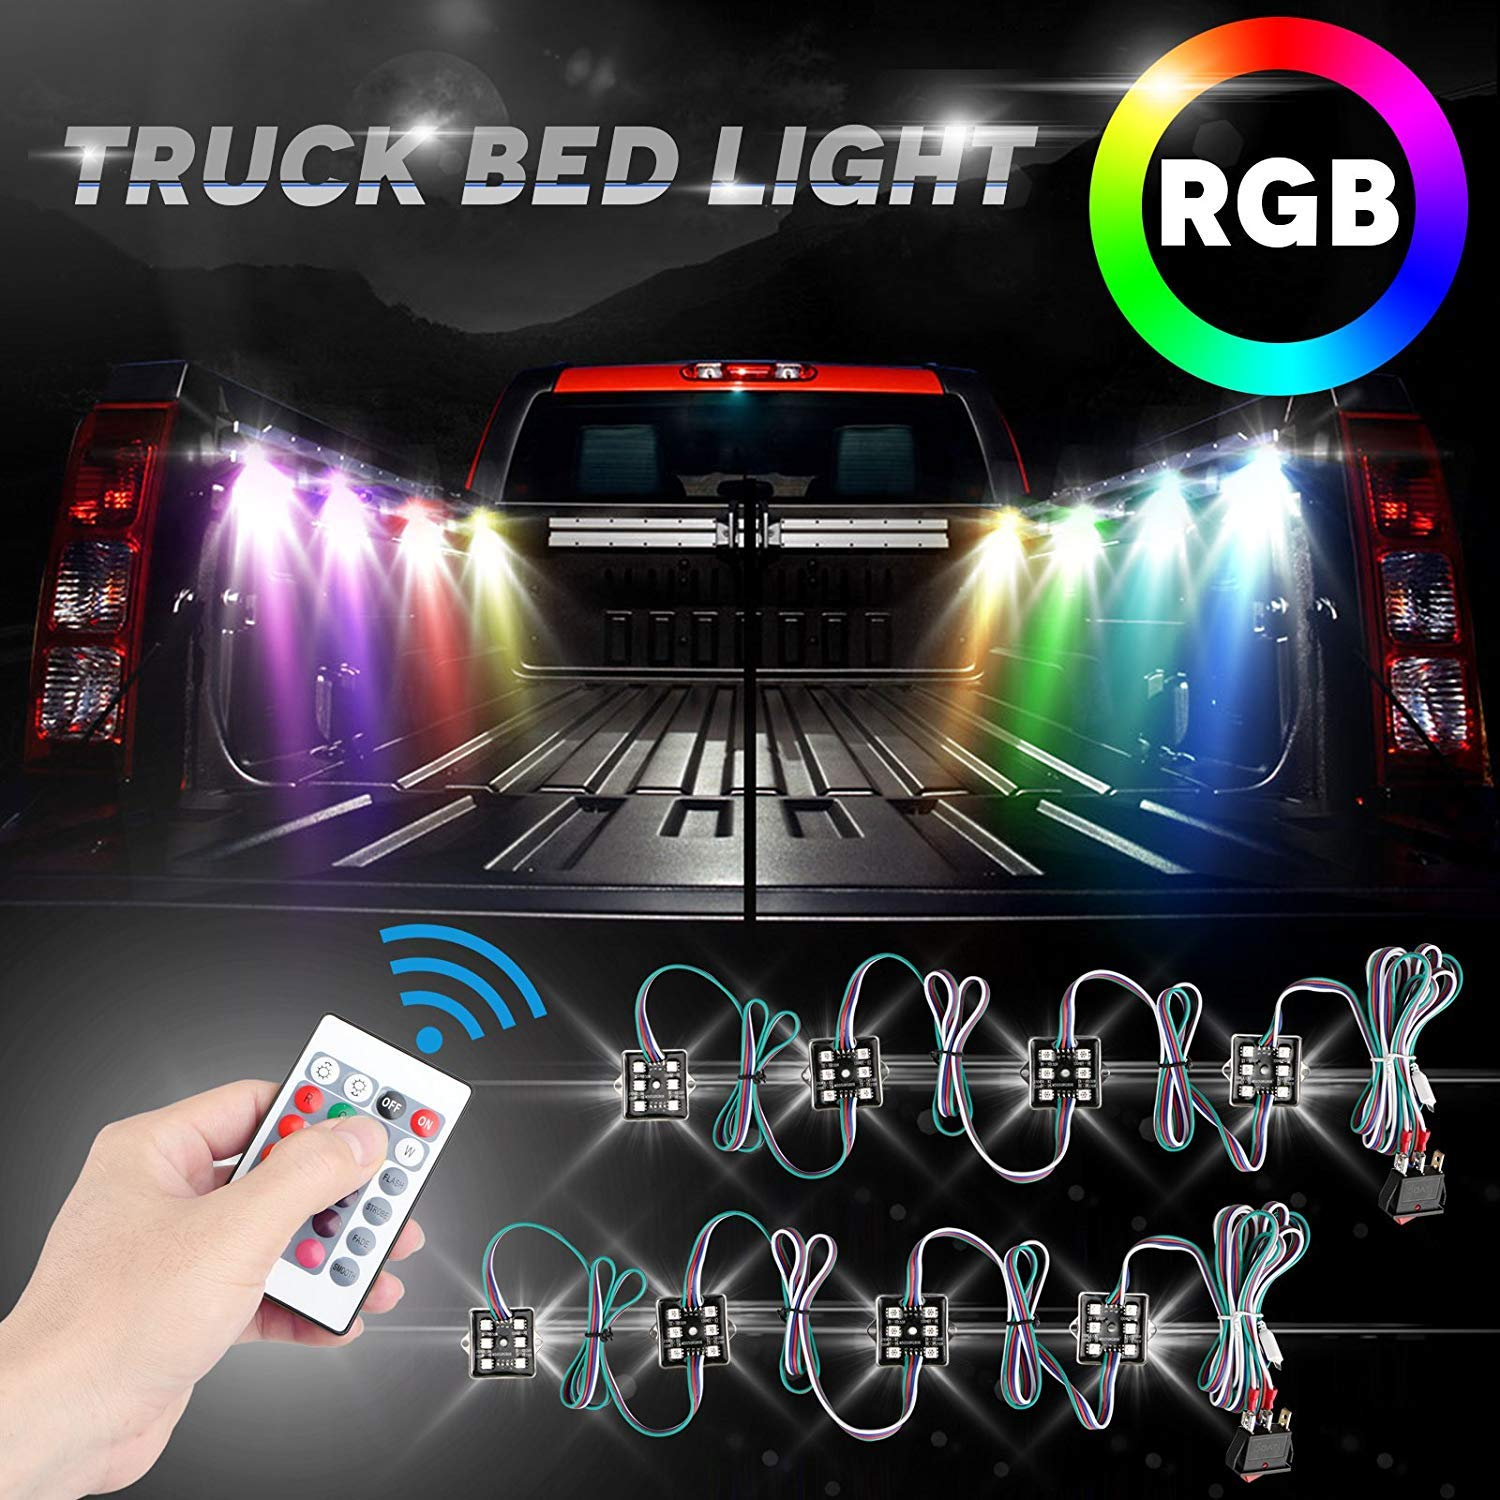 LED Truck Bed Lights Linkstyle 2Pcs LED Rock Lights, 48 LEDs RGB Truck Bed Cargo Lights with Remote Control, On/Off Switch & IP67 Waterproof for Pickup Truck, RV, SUV, Boats, Unloading Cargo Area by LinkStyle